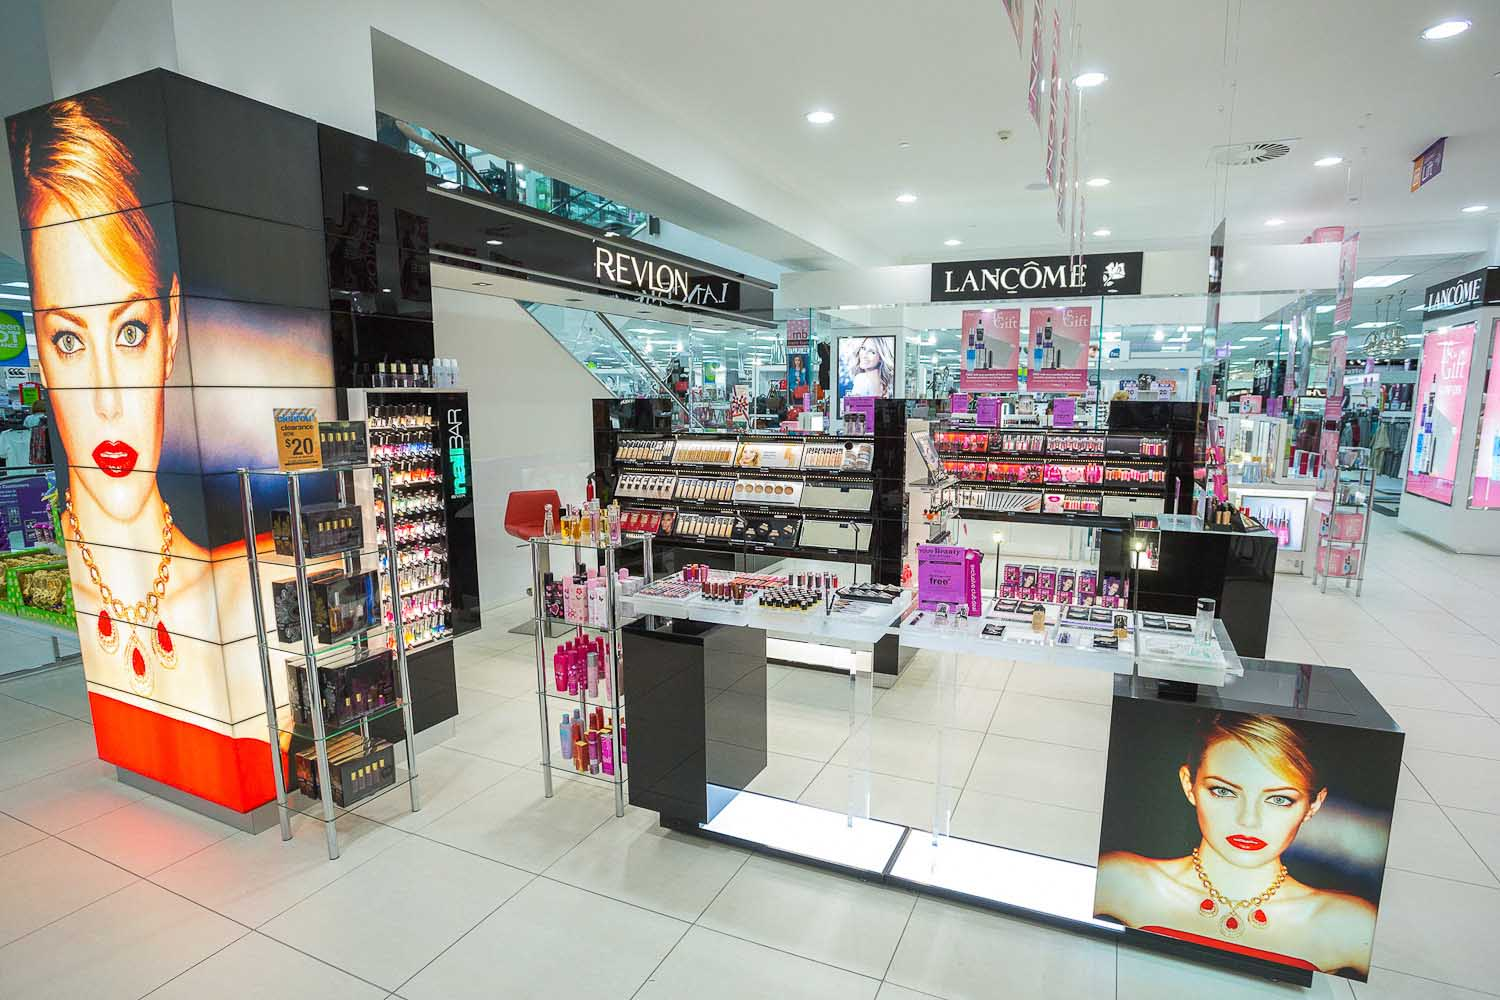 Revlon New Zealand - Farmers Centre Place Lloyd Sinton Design - retail and commercial interior design – space-planning – shop-fitting – fit out – spatial design – merchandising - signage